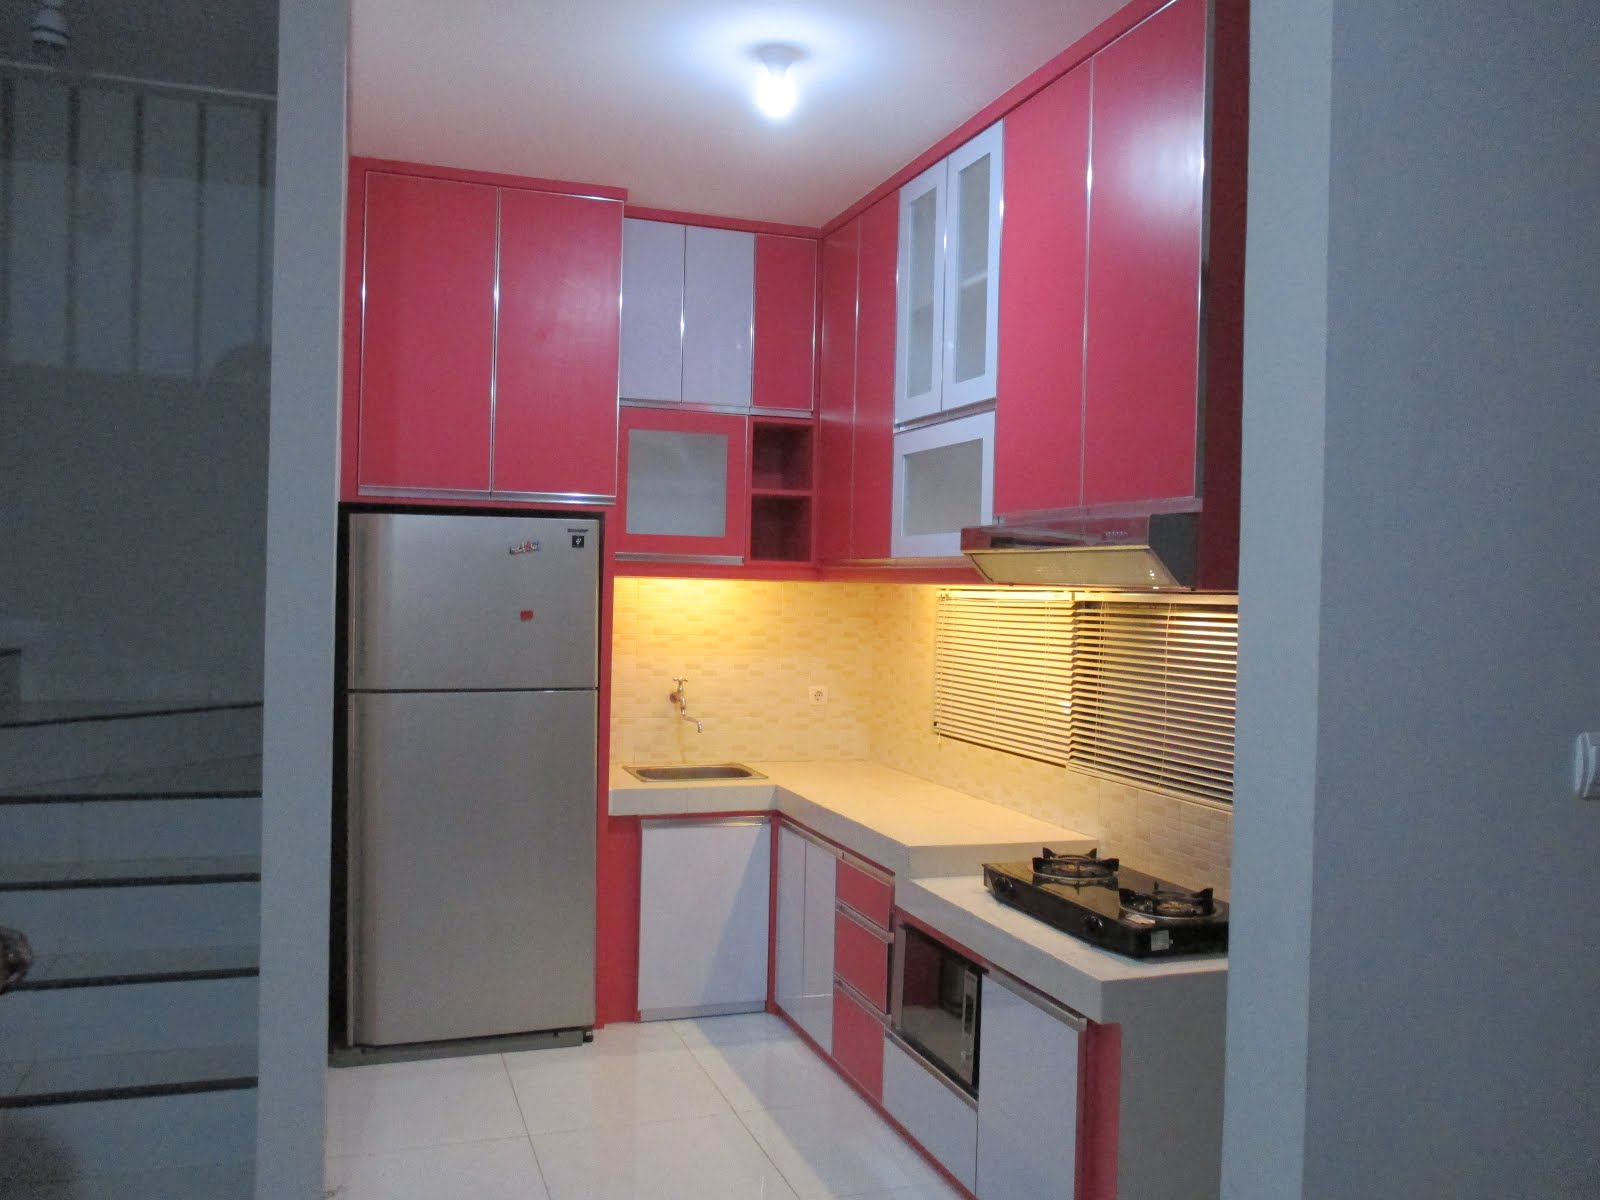 Kitchen set Bapak Totok at Jl aselih Lanata 2 Residance Jagakarsa